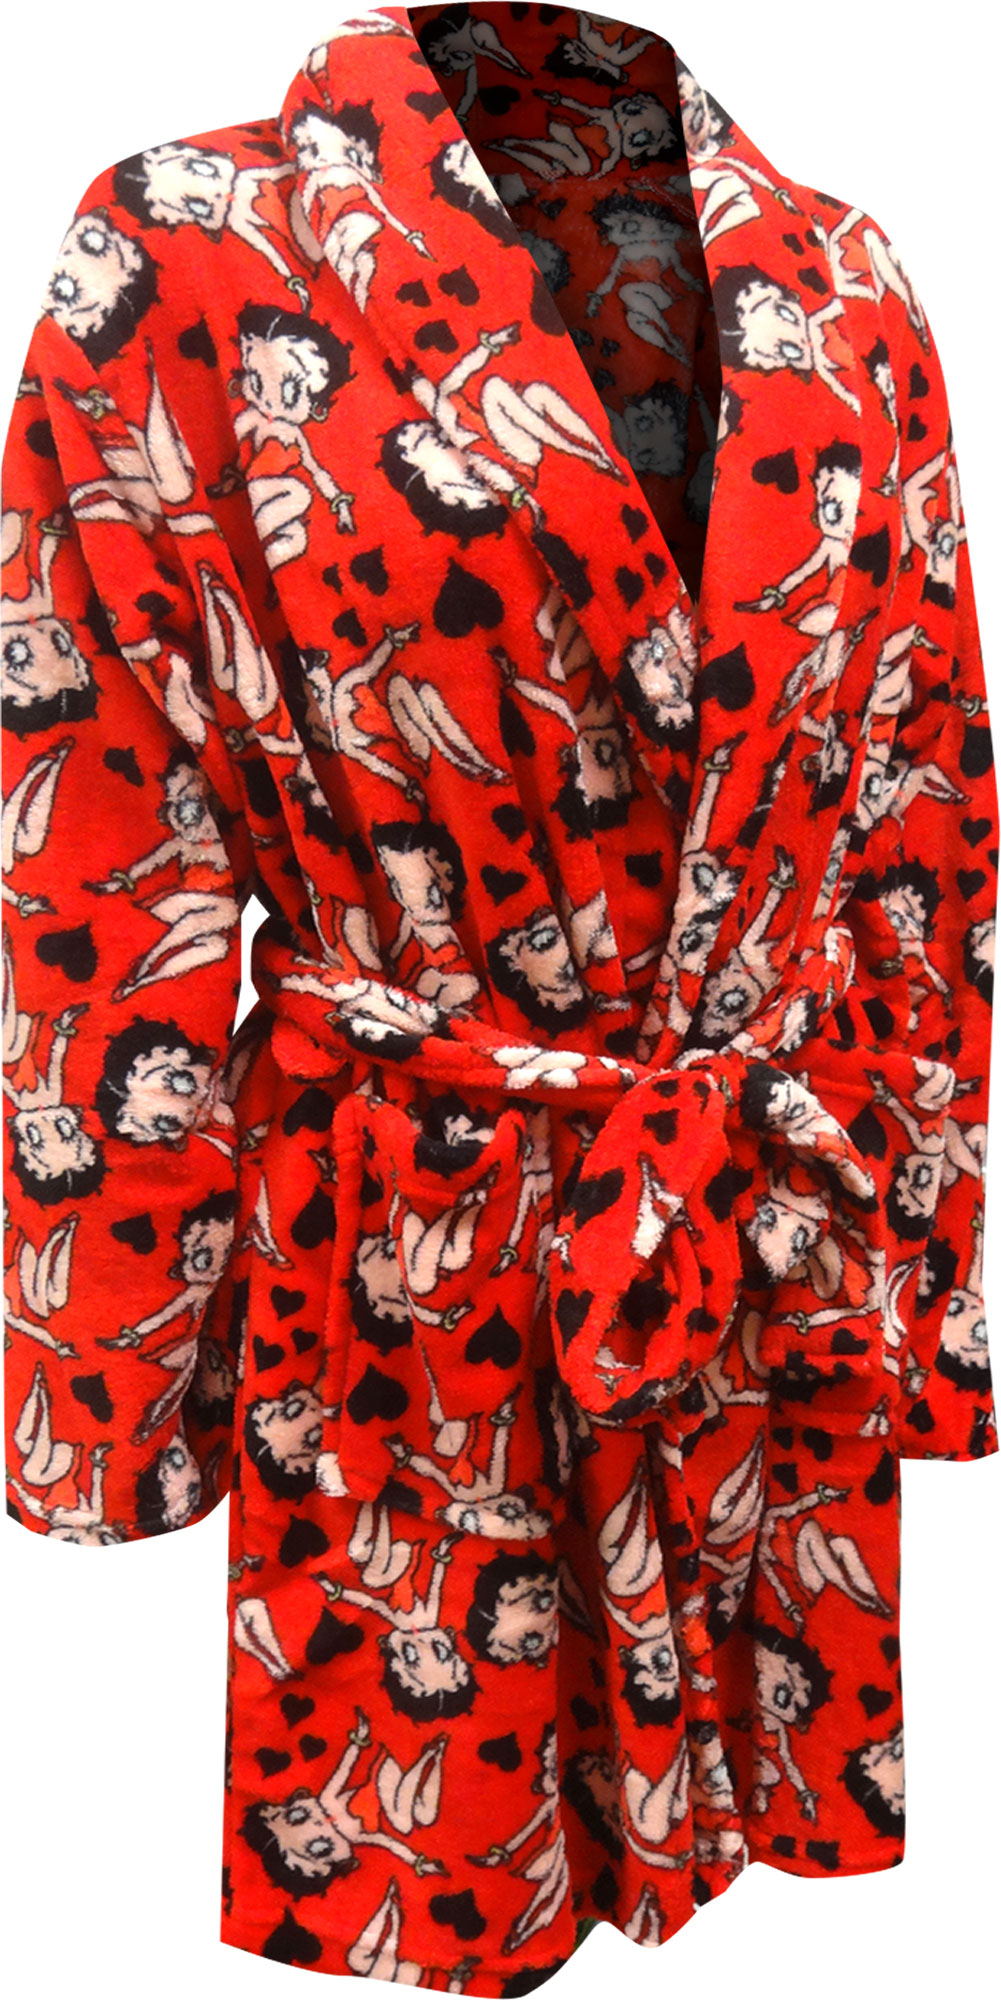 Image of Betty Boop Super Soft Plush Robe for women